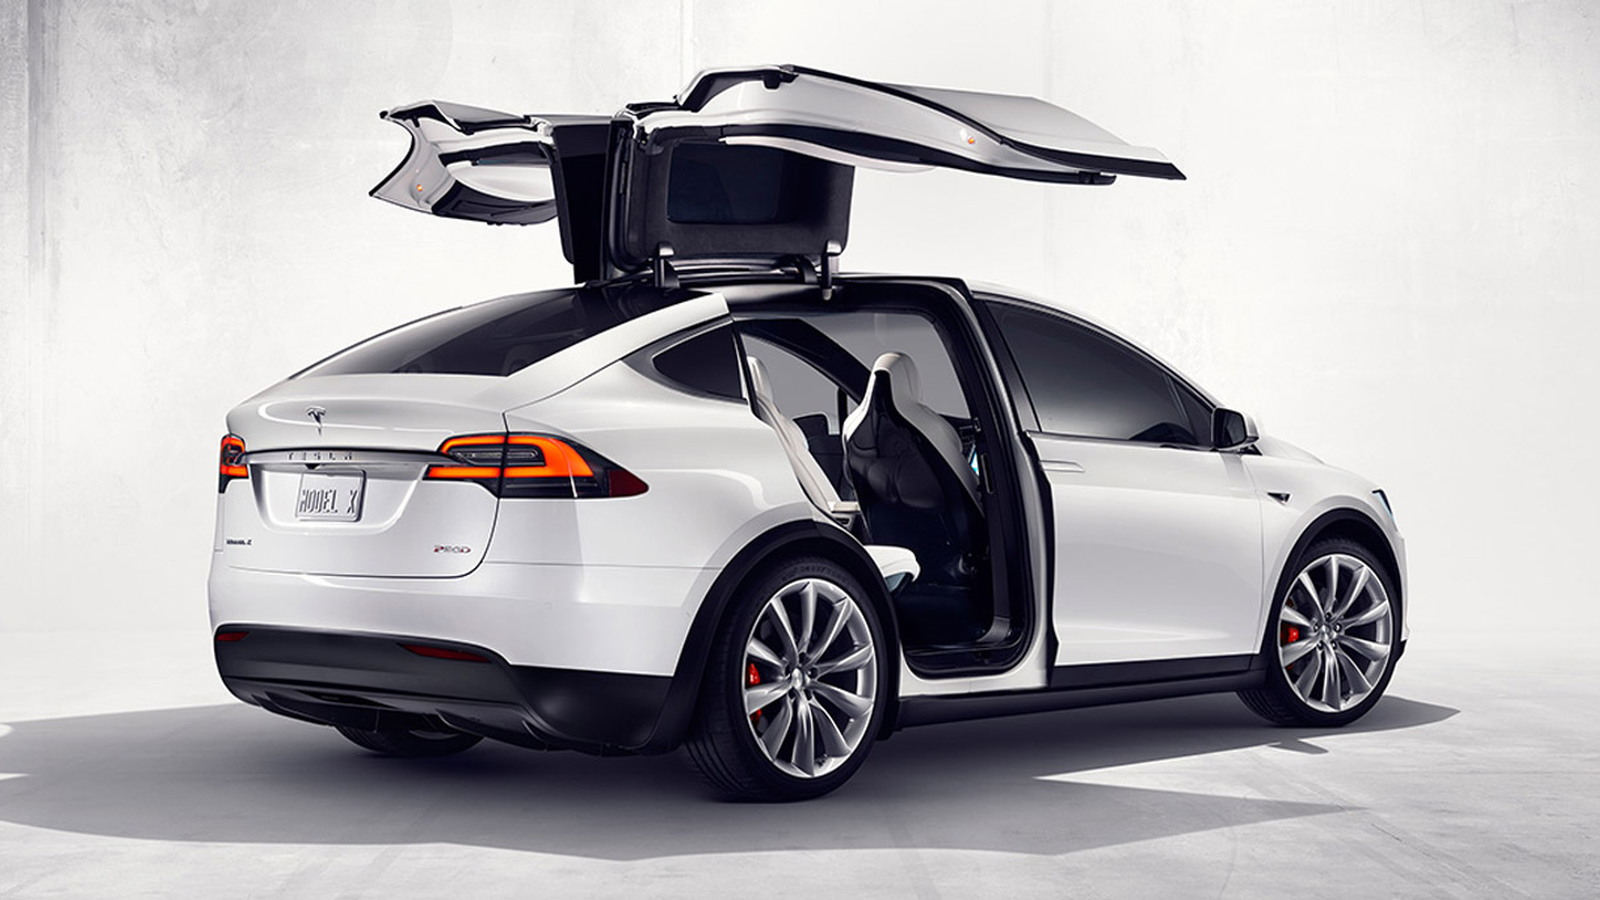 tesla model x configurator now live signature series starts at 132 000 updated tesla model x configurator now live